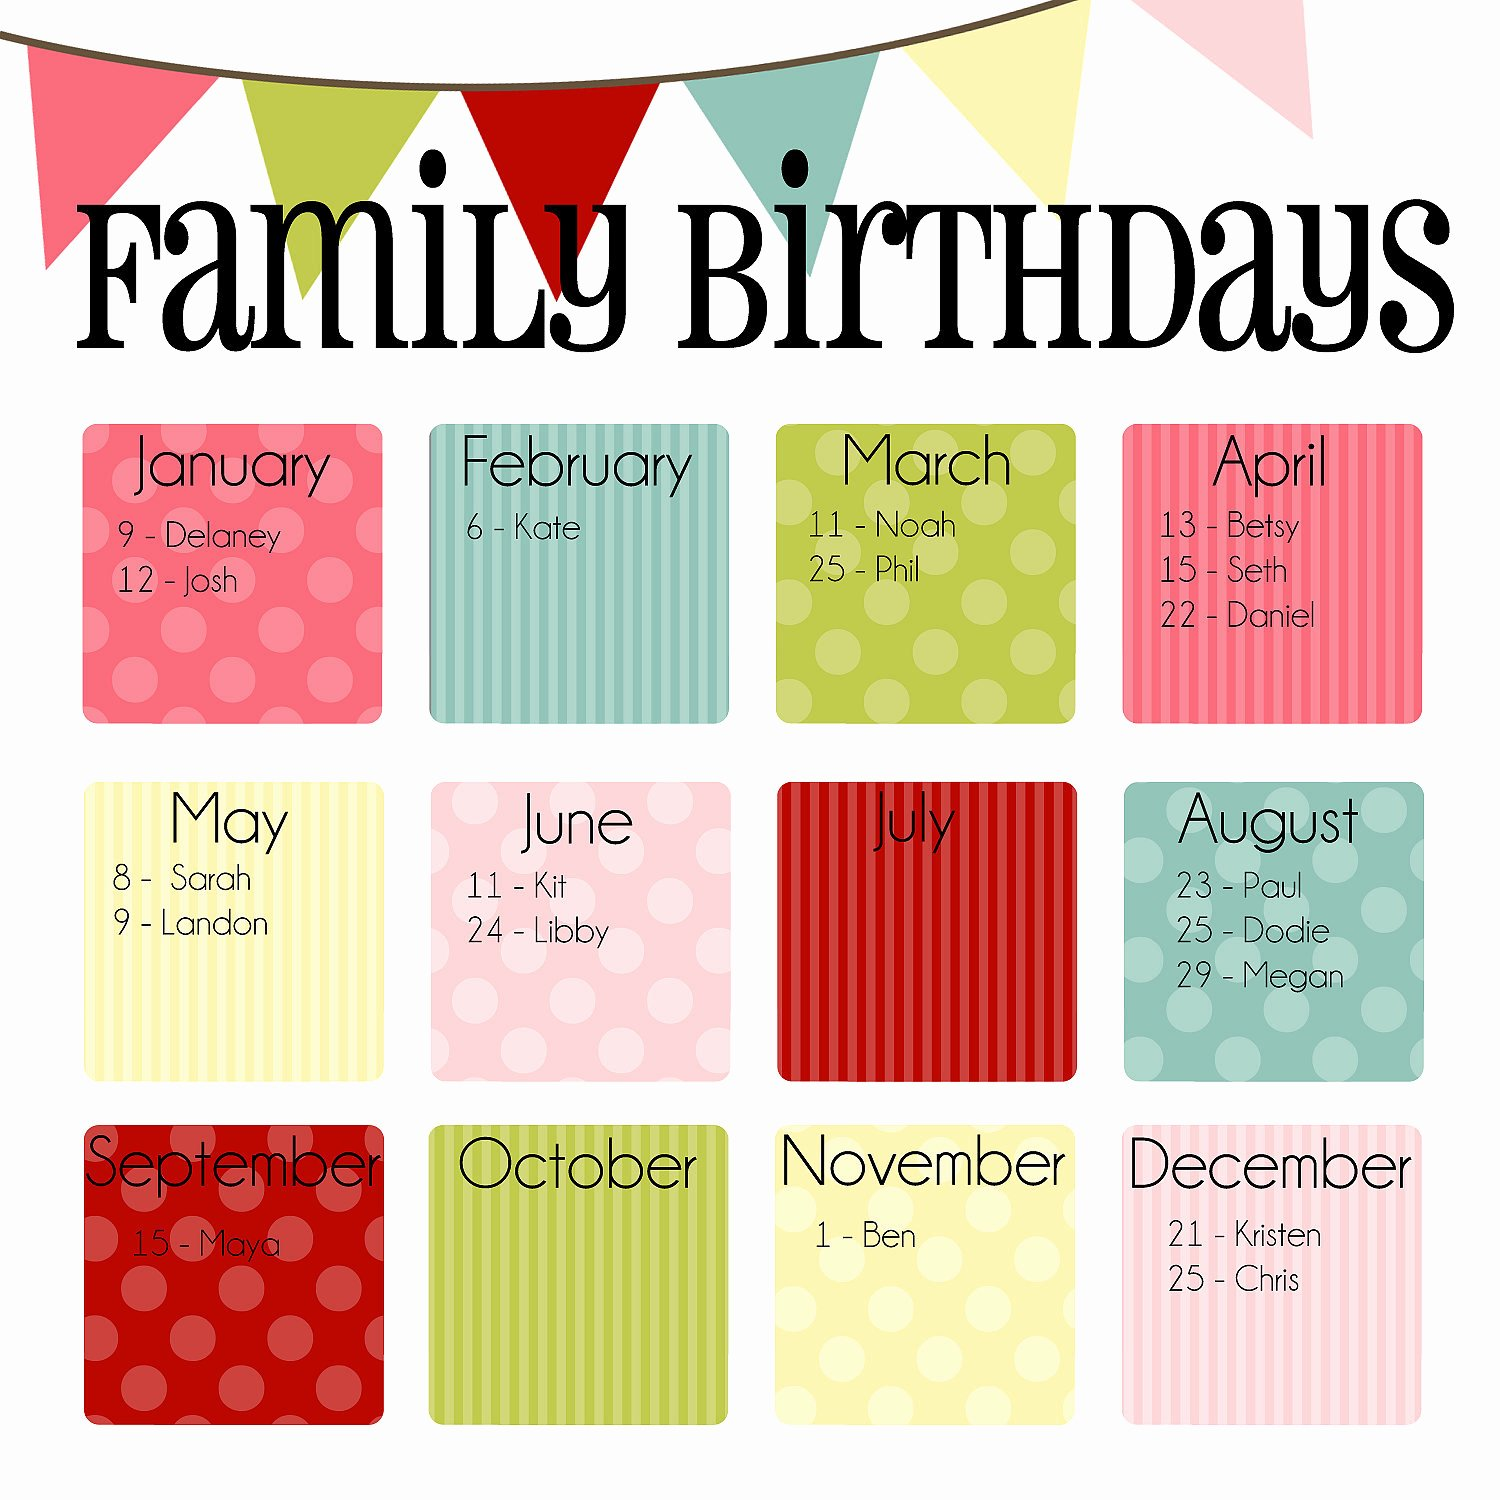 Family Birthday Calendar Template New Items Similar to Family Birthday Calendar Digital Copy